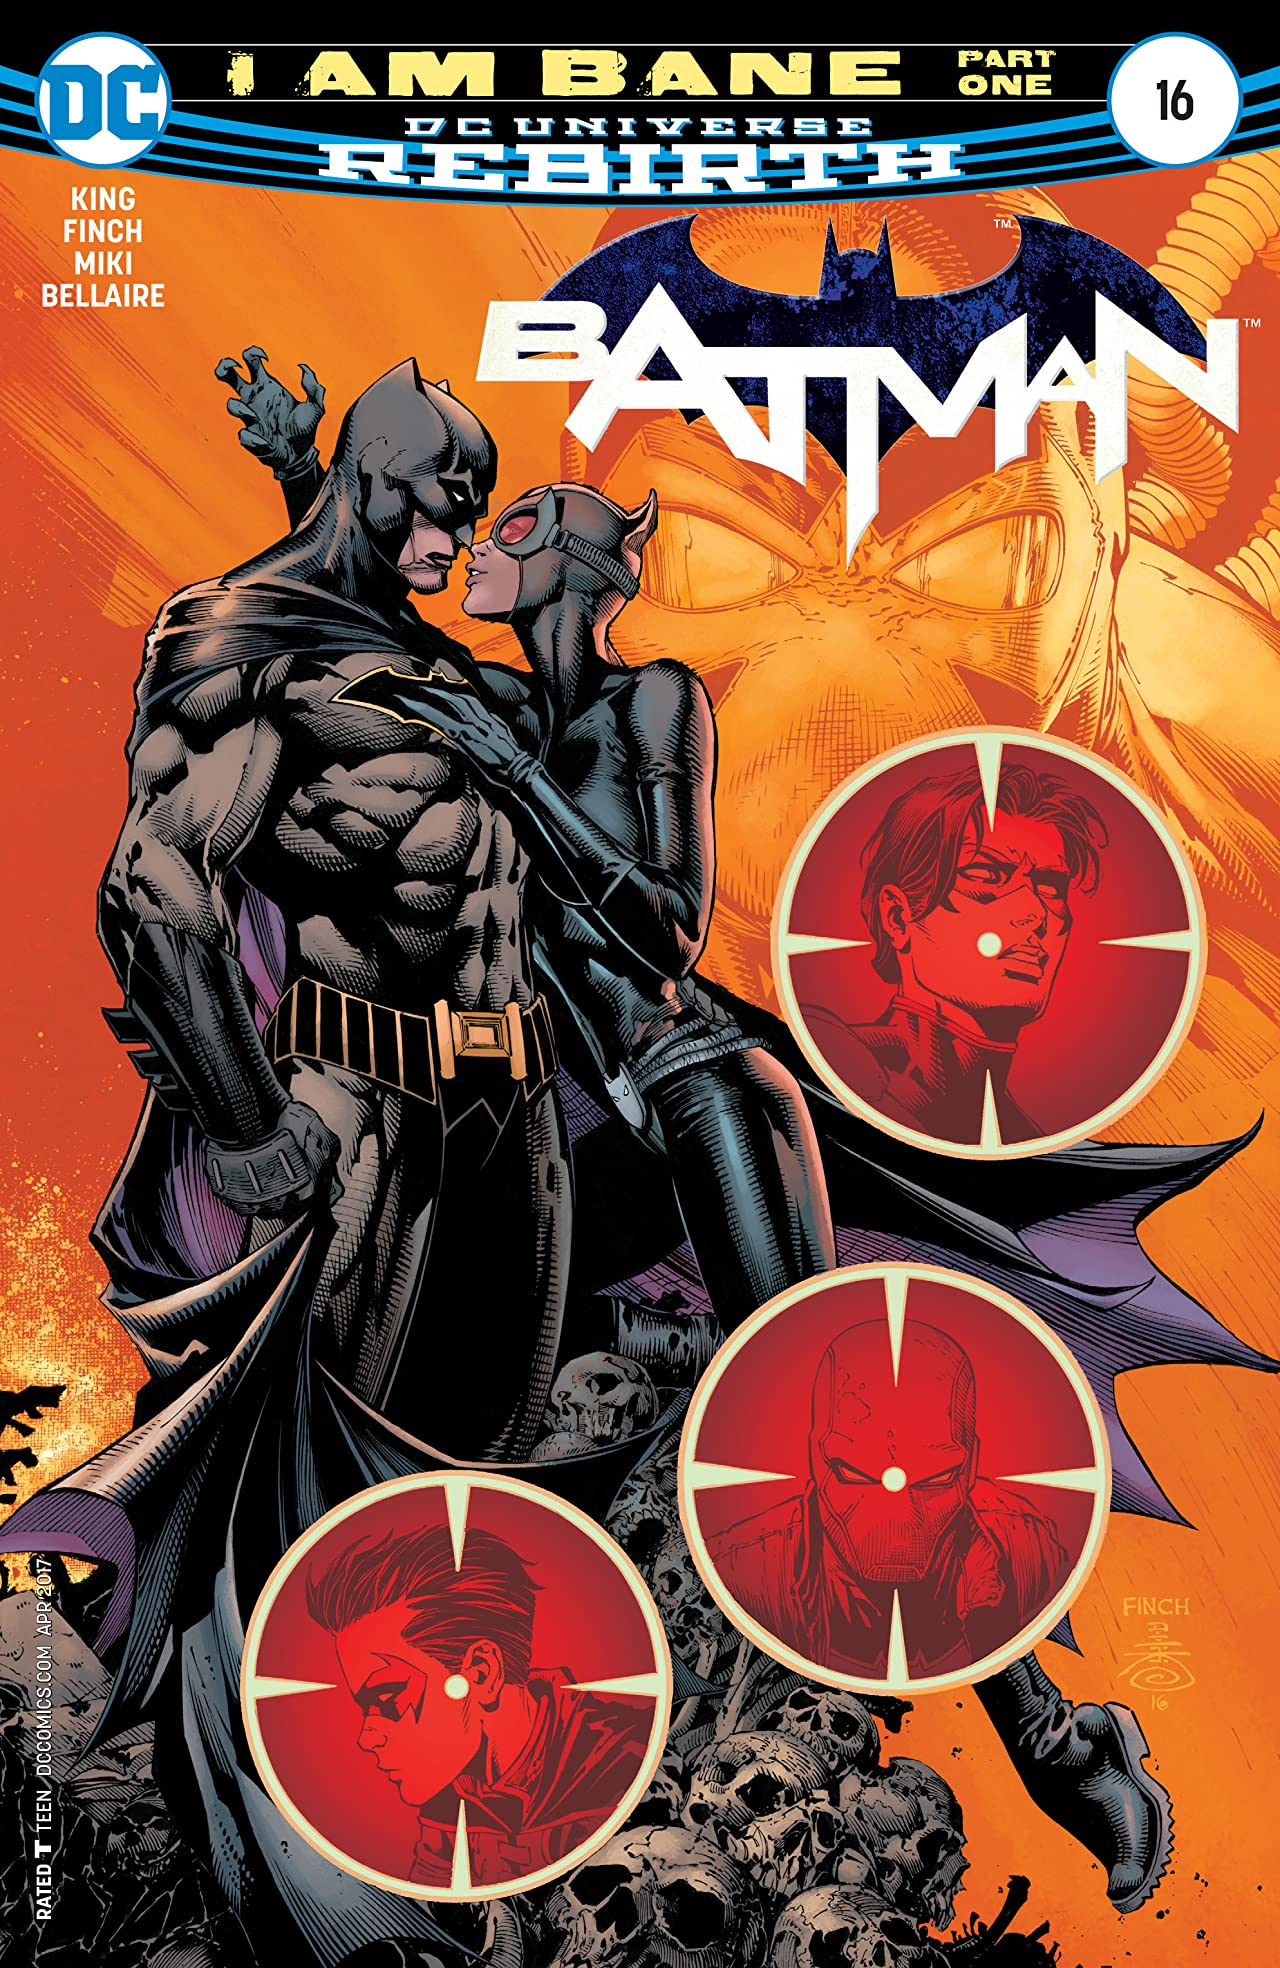 Batman #15 Review